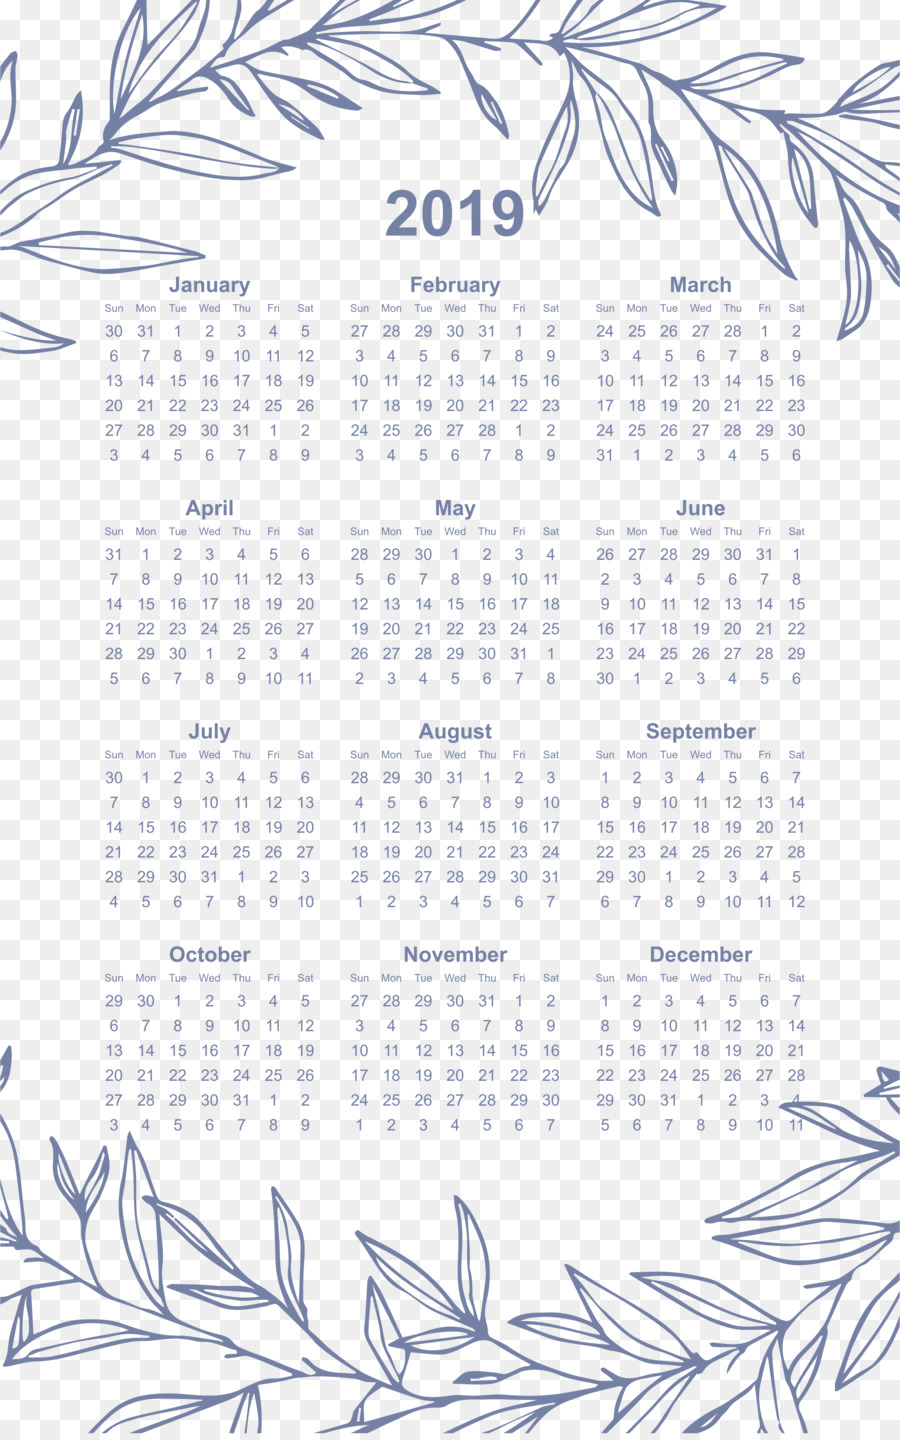 2019 calendar printable one page png